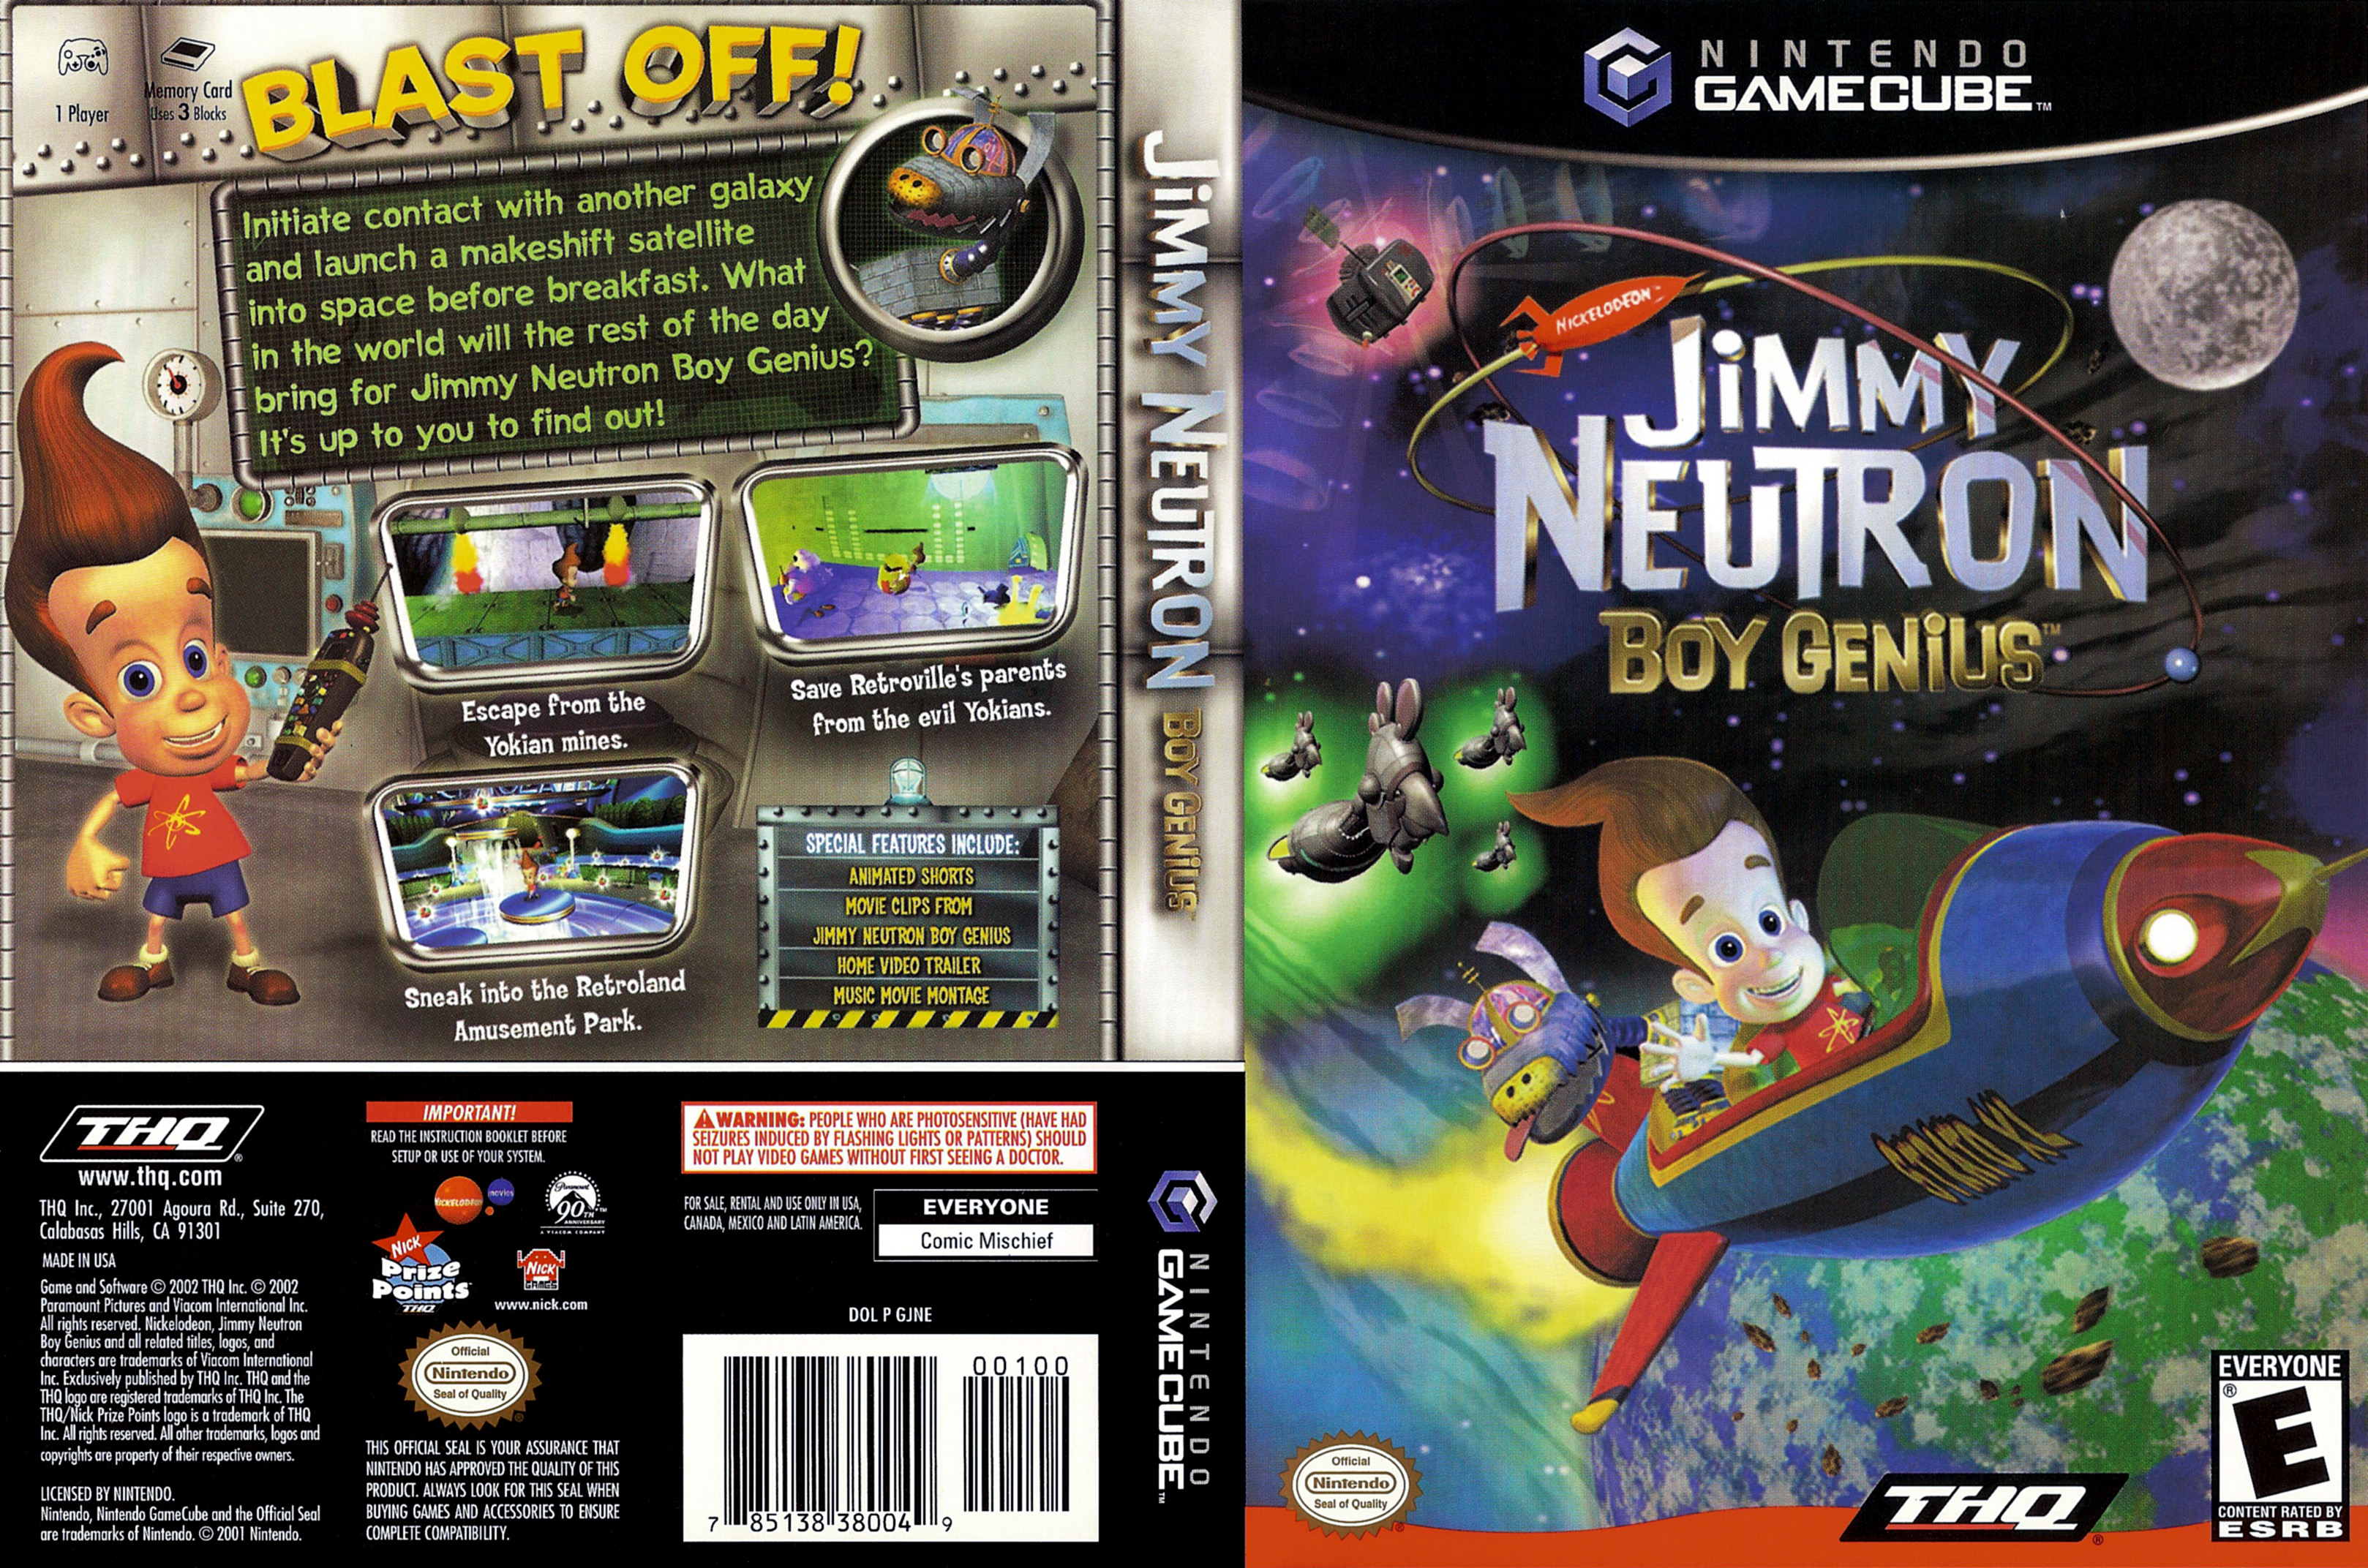 Jimmy neutron boy genius games online